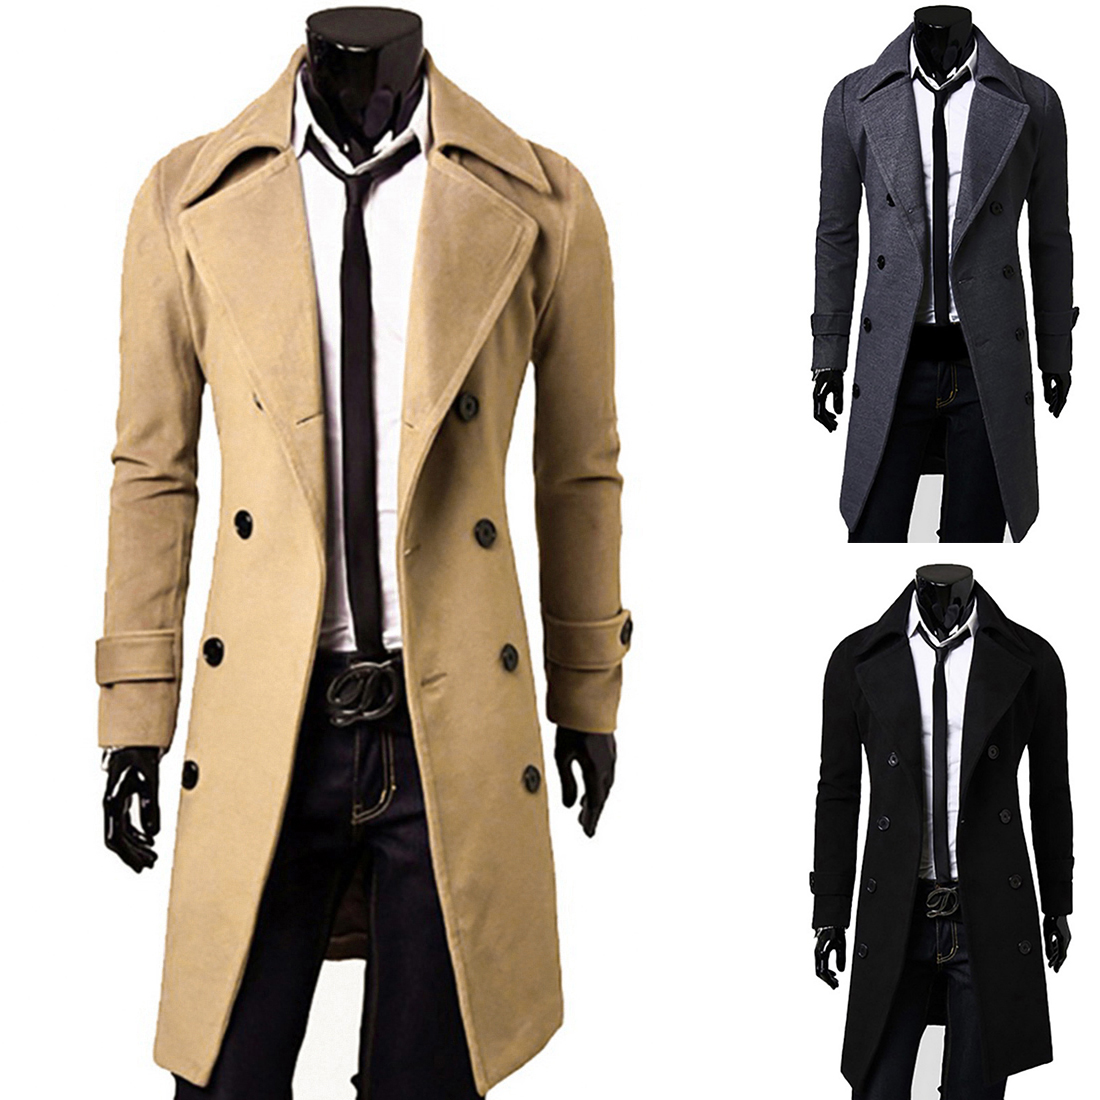 Long Jacket Overcoat Double-Breasted Winter Fashion Warm Slim Stylish Outwear Parka Men title=